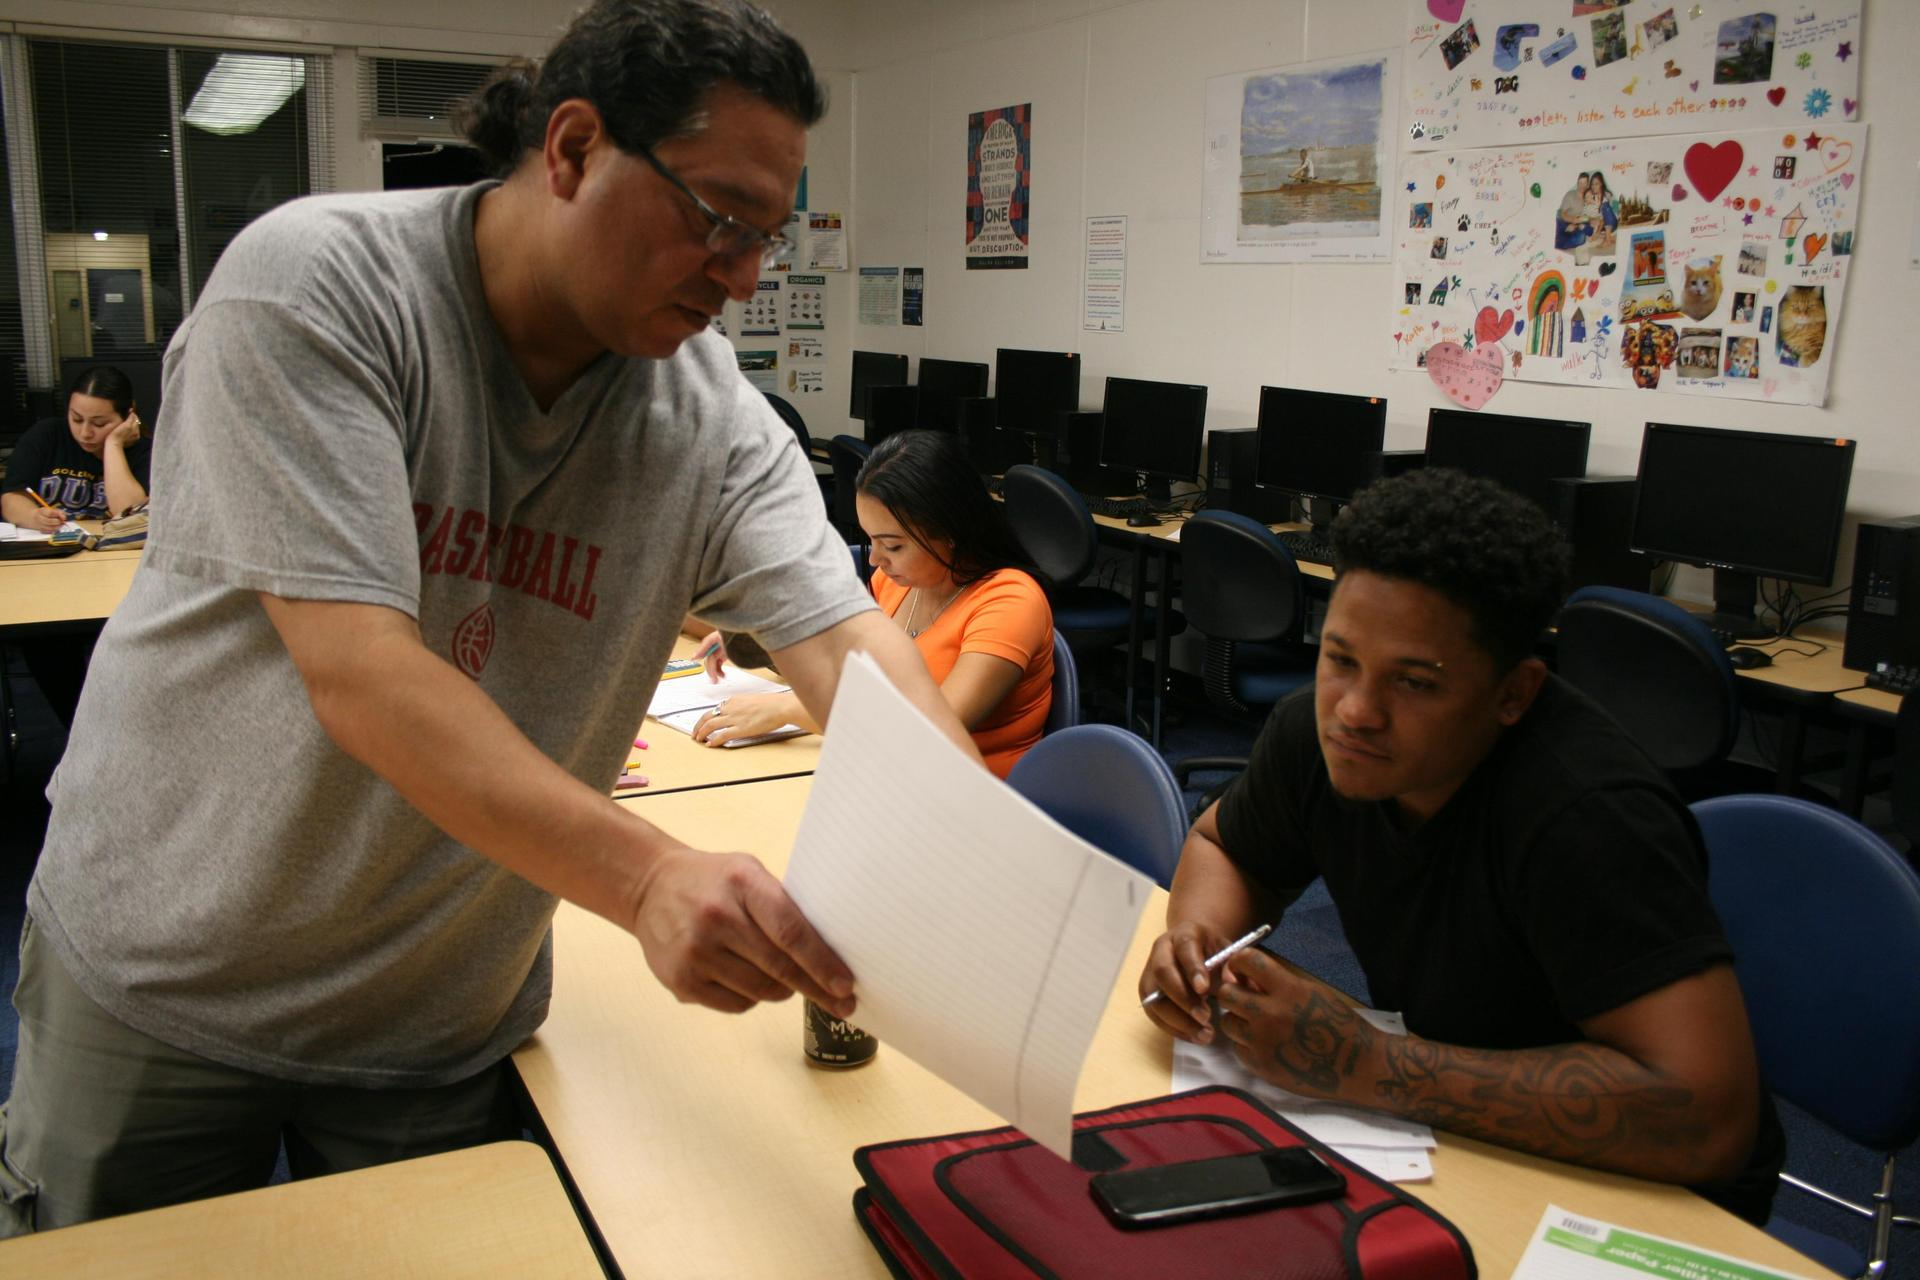 A teacher, standing on one side of a table, points to something on a paper that he is showing to an adult student sitting at the table.